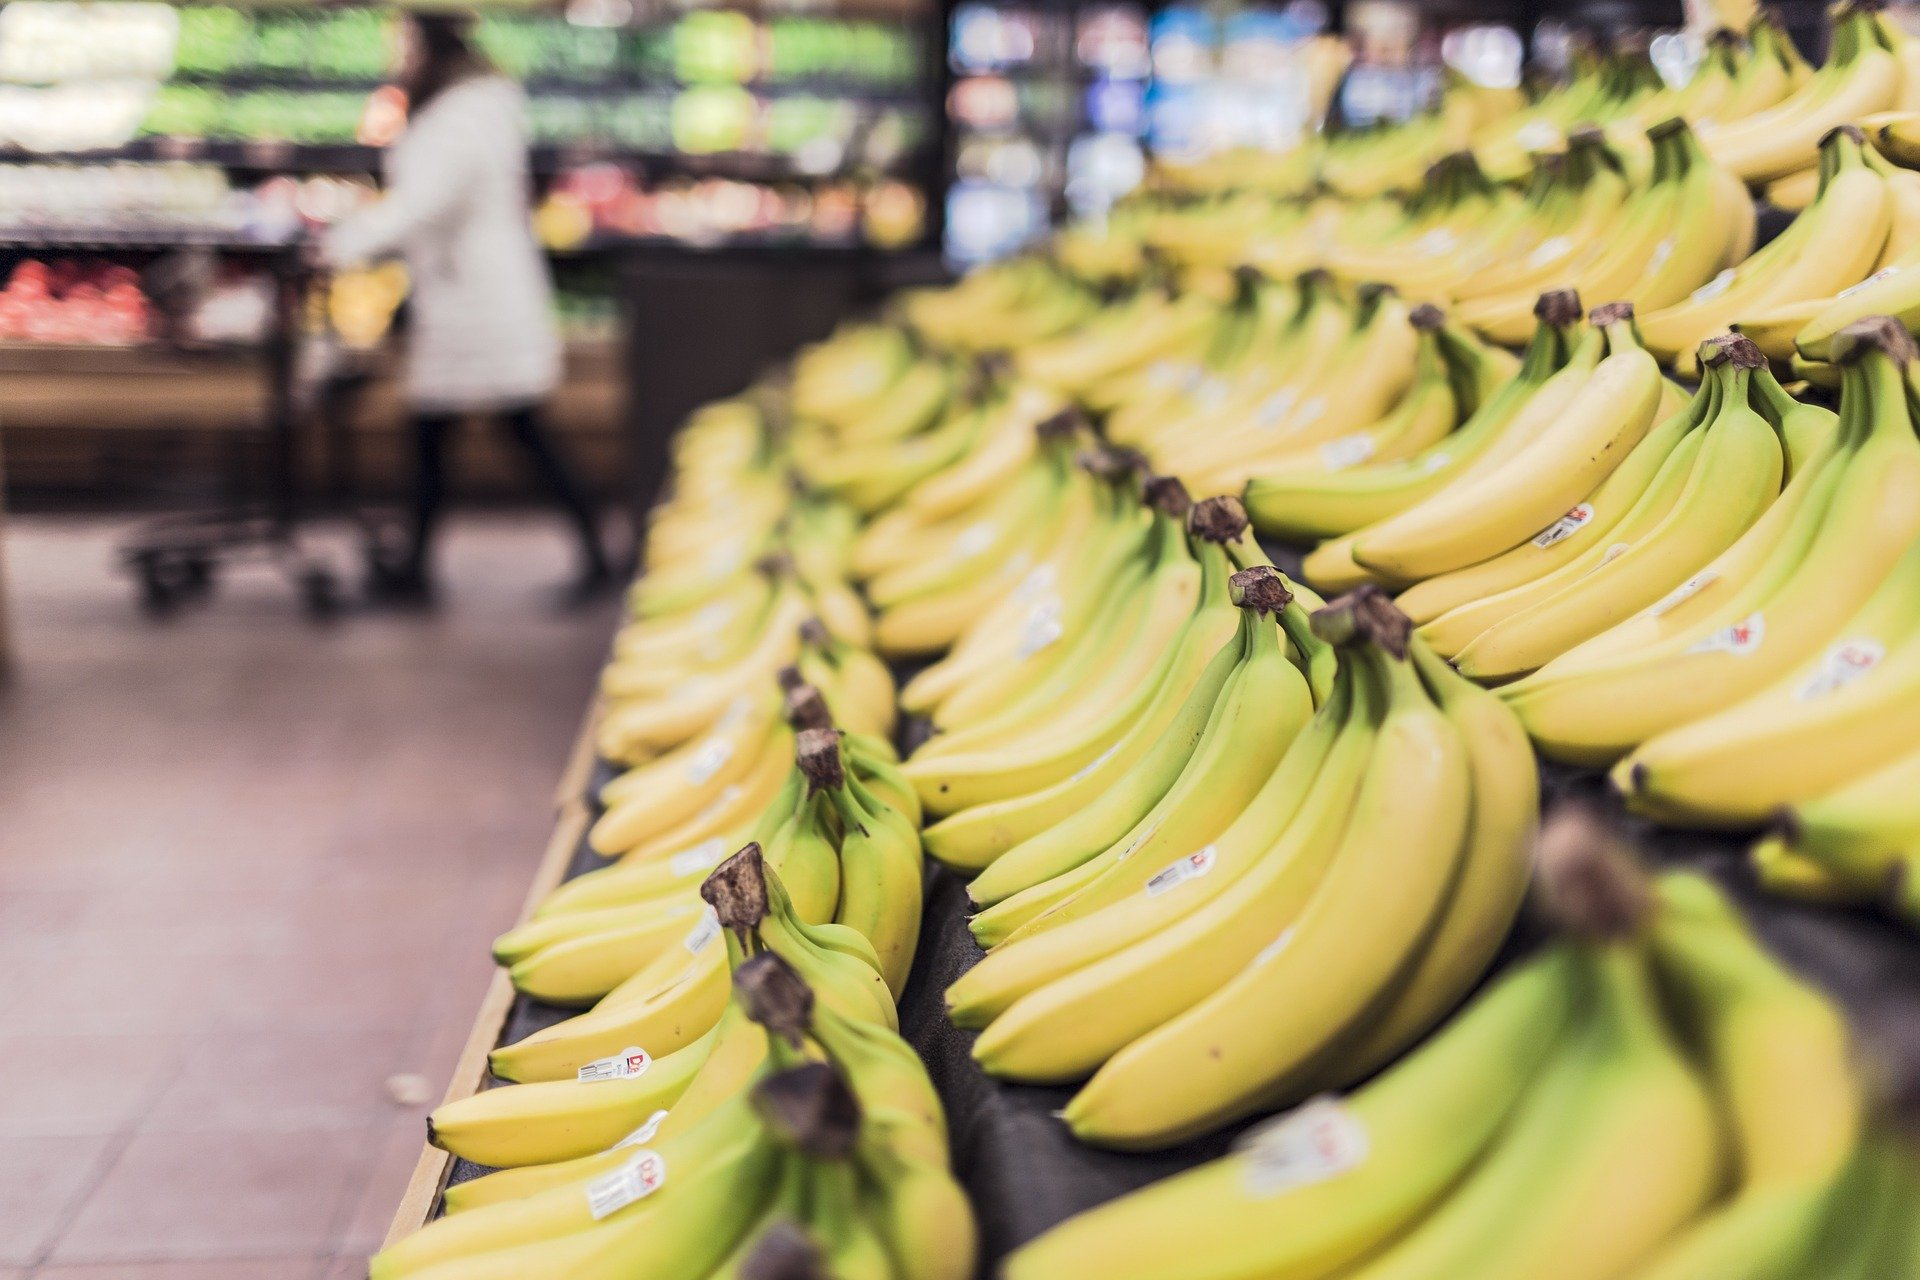 Bananas at grocery store | The Refinery